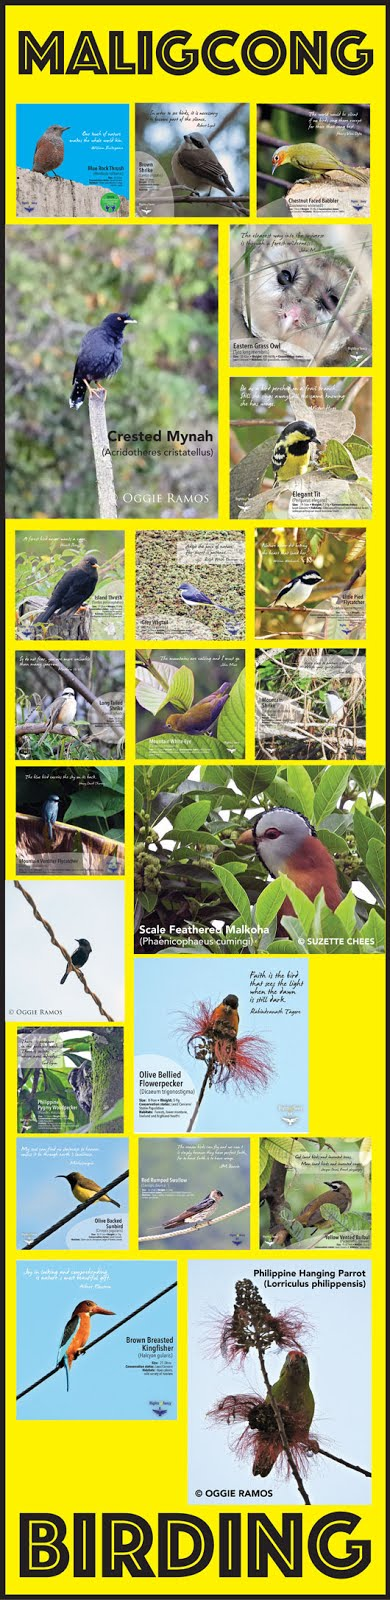 Maligcong Birding Gallery